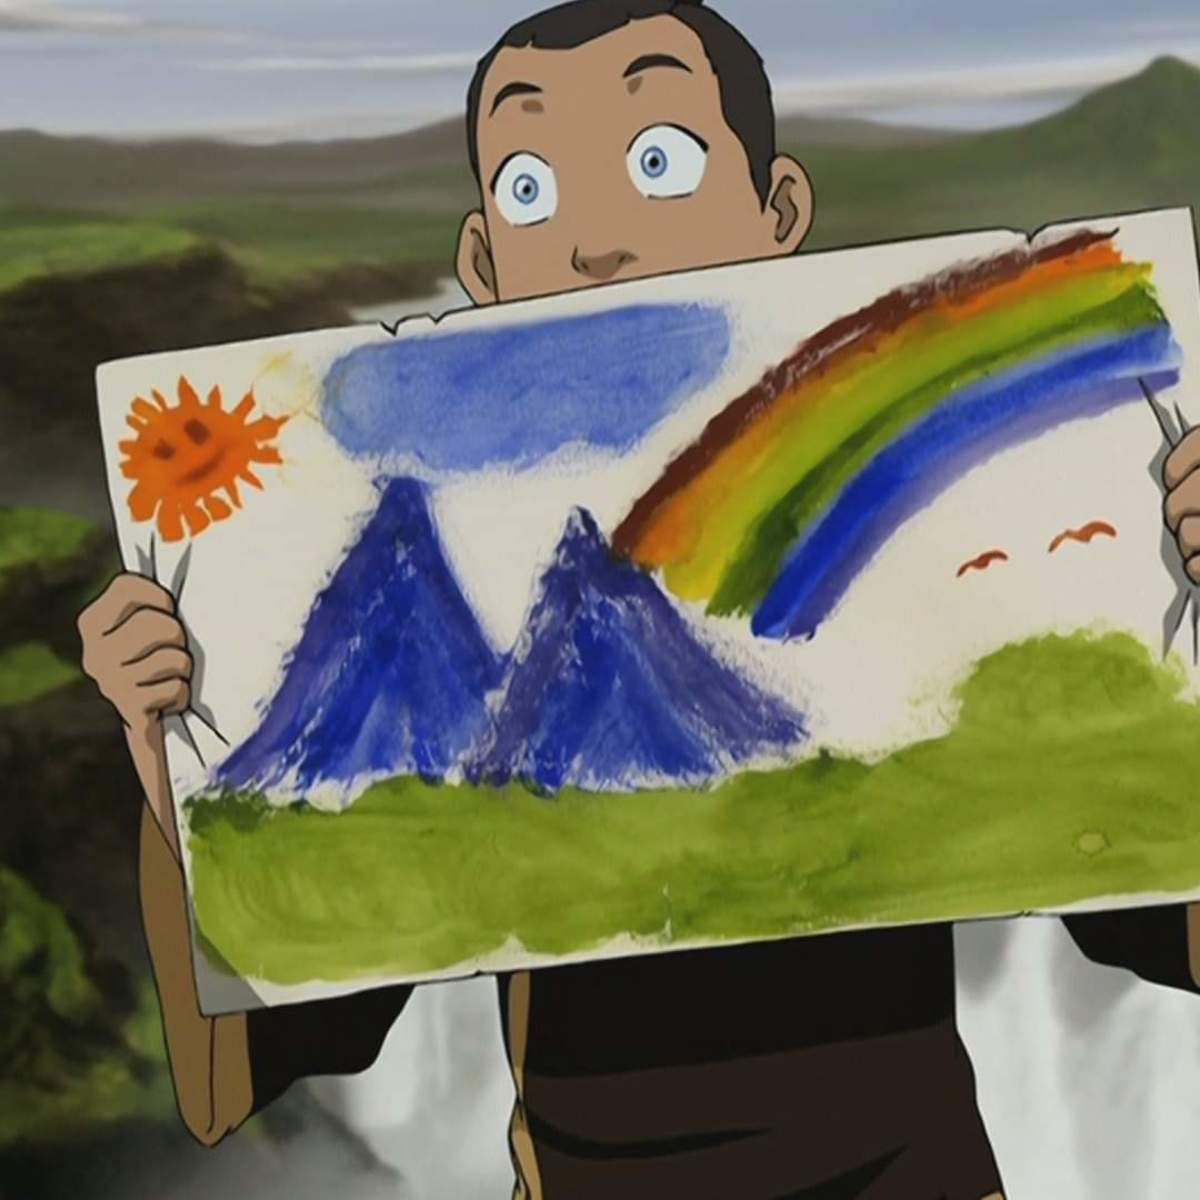 From ATLA's main Facebook page.